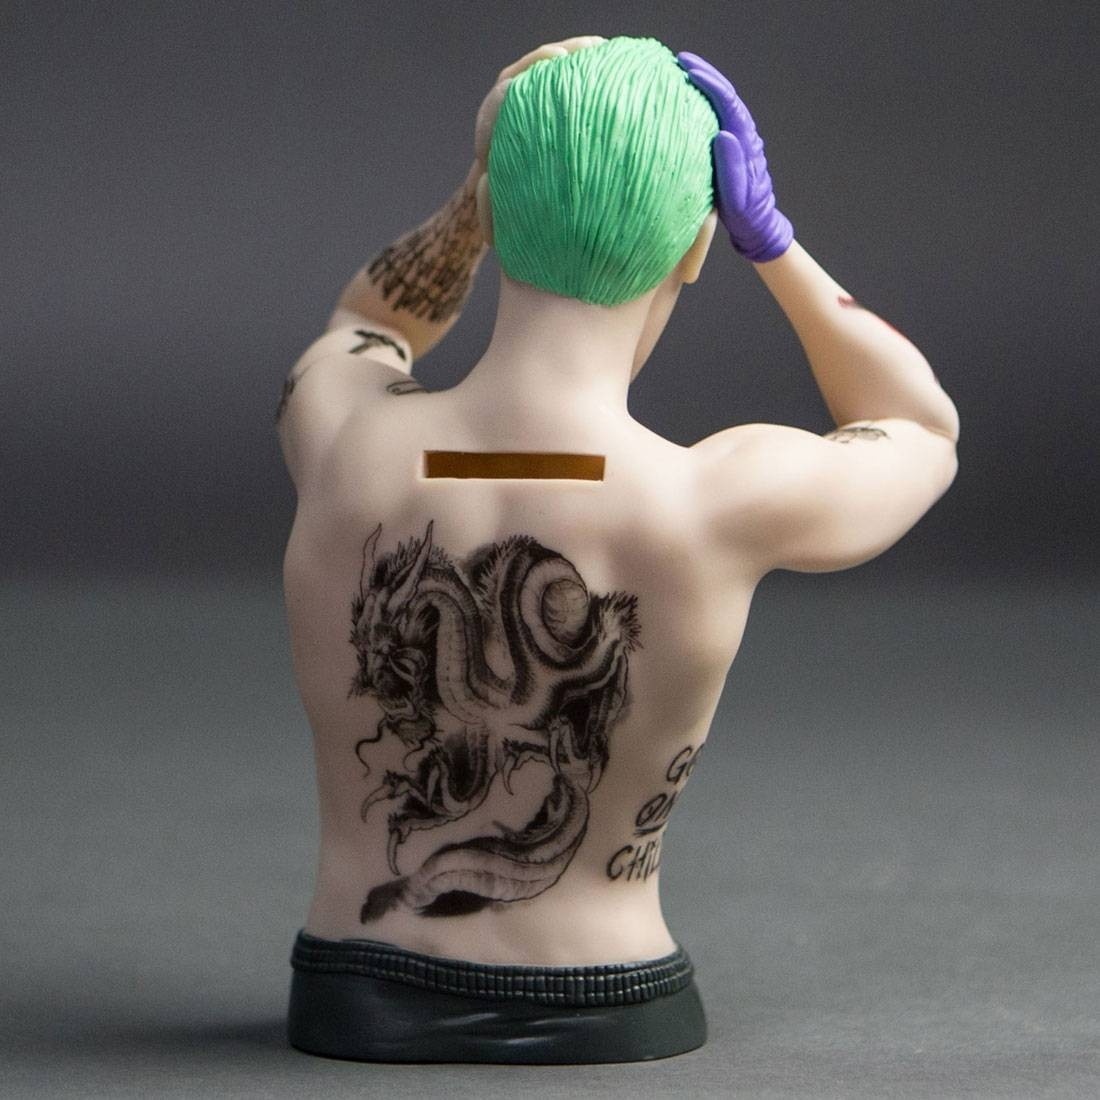 Monogram Suicide Squad The Joker Bust Bank tan